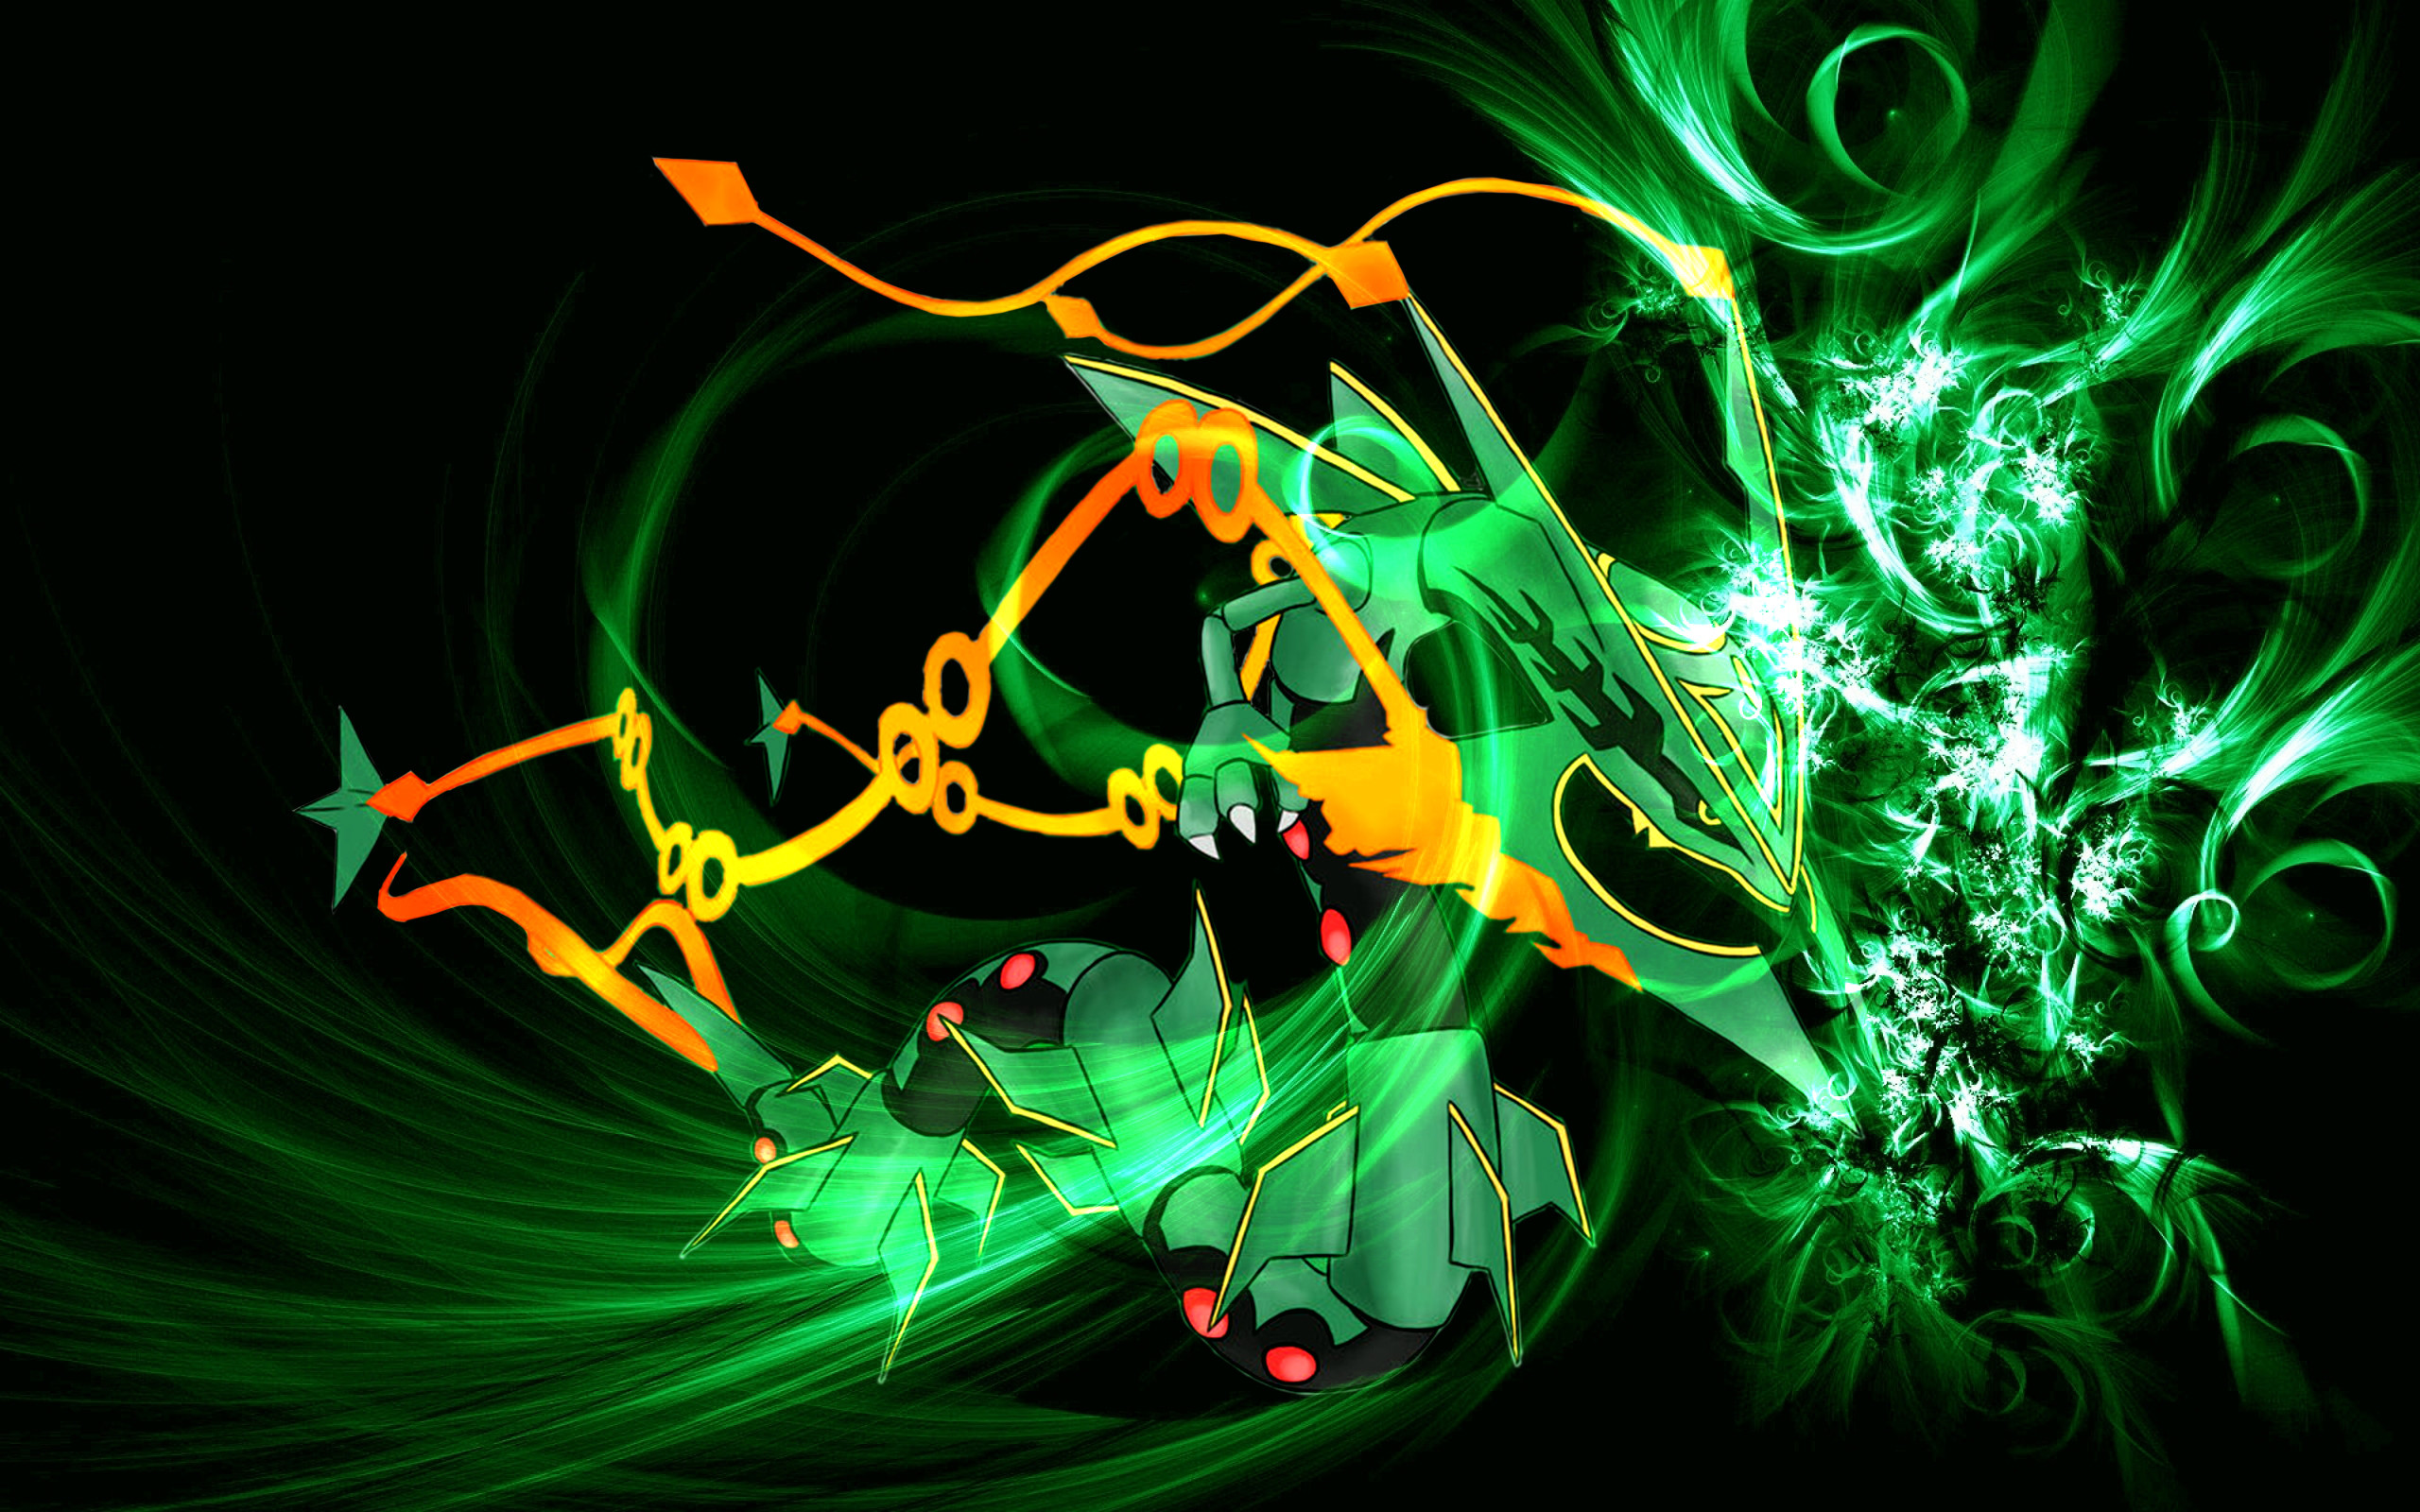 2560x1600 Mega Rayquaza Wallpaper HD Wallpapers on picsfair.com